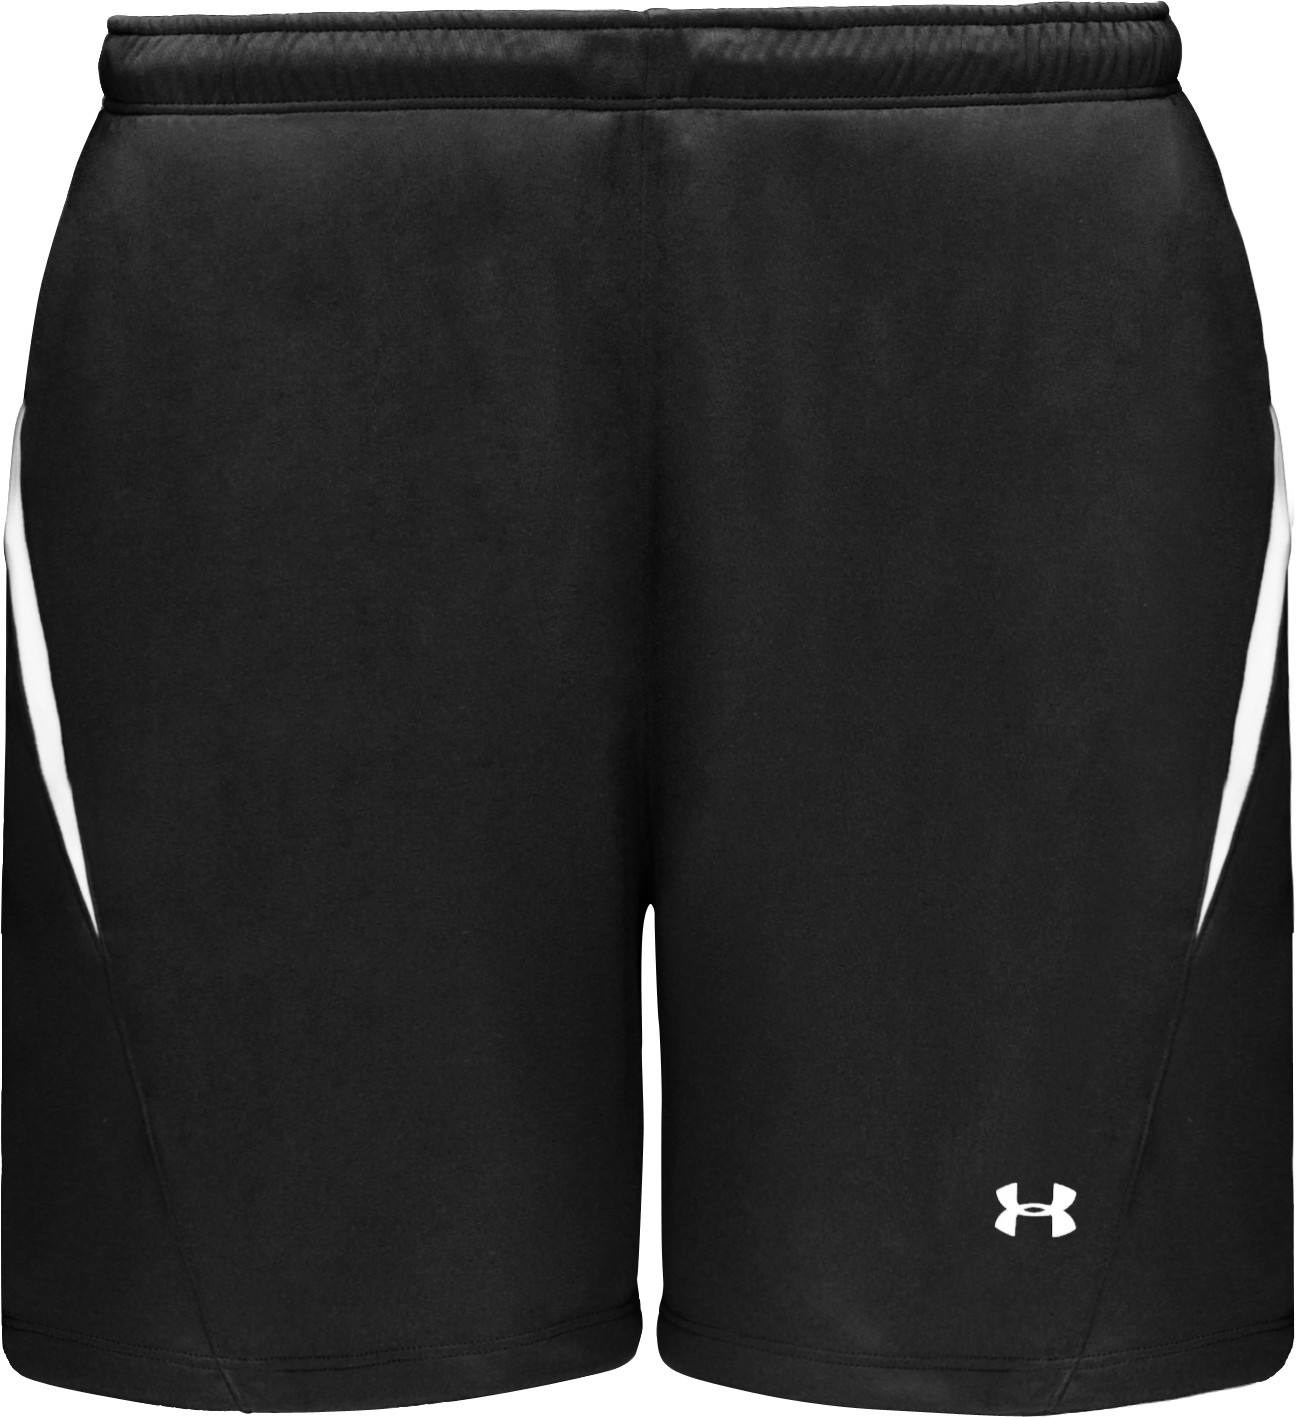 photo: Under Armour Women's Stealth Short active short